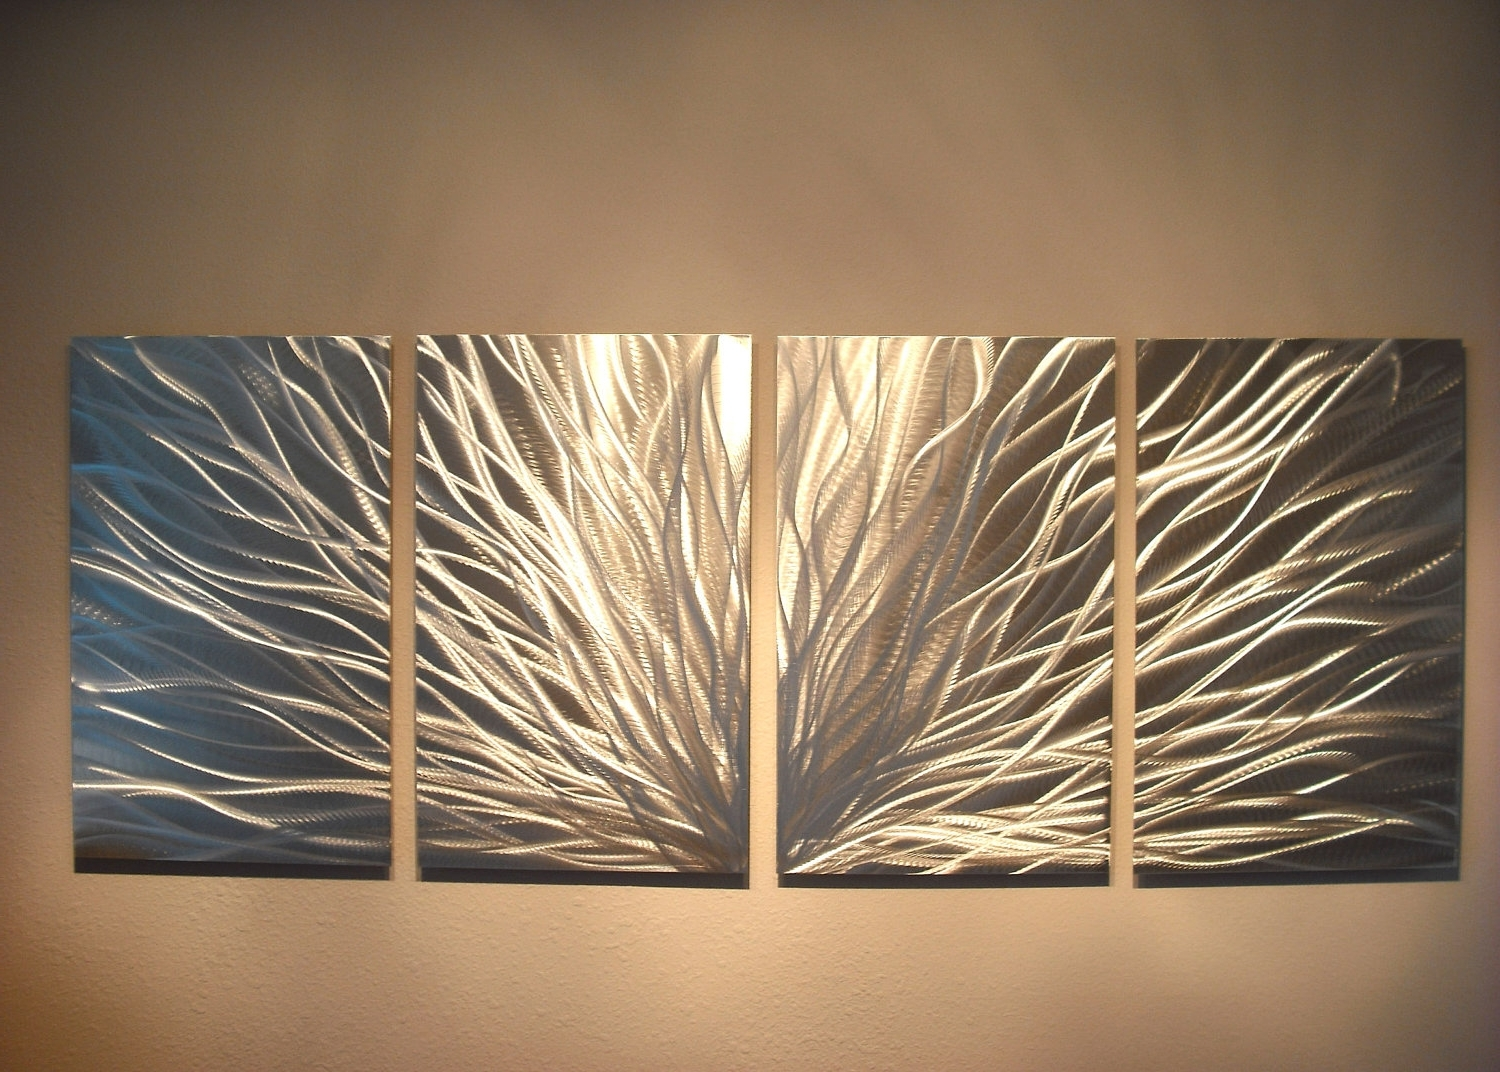 Wall Art Metal Regarding Recent Radiance – Abstract Metal Wall Art Contemporary Modern Decor (View 18 of 20)